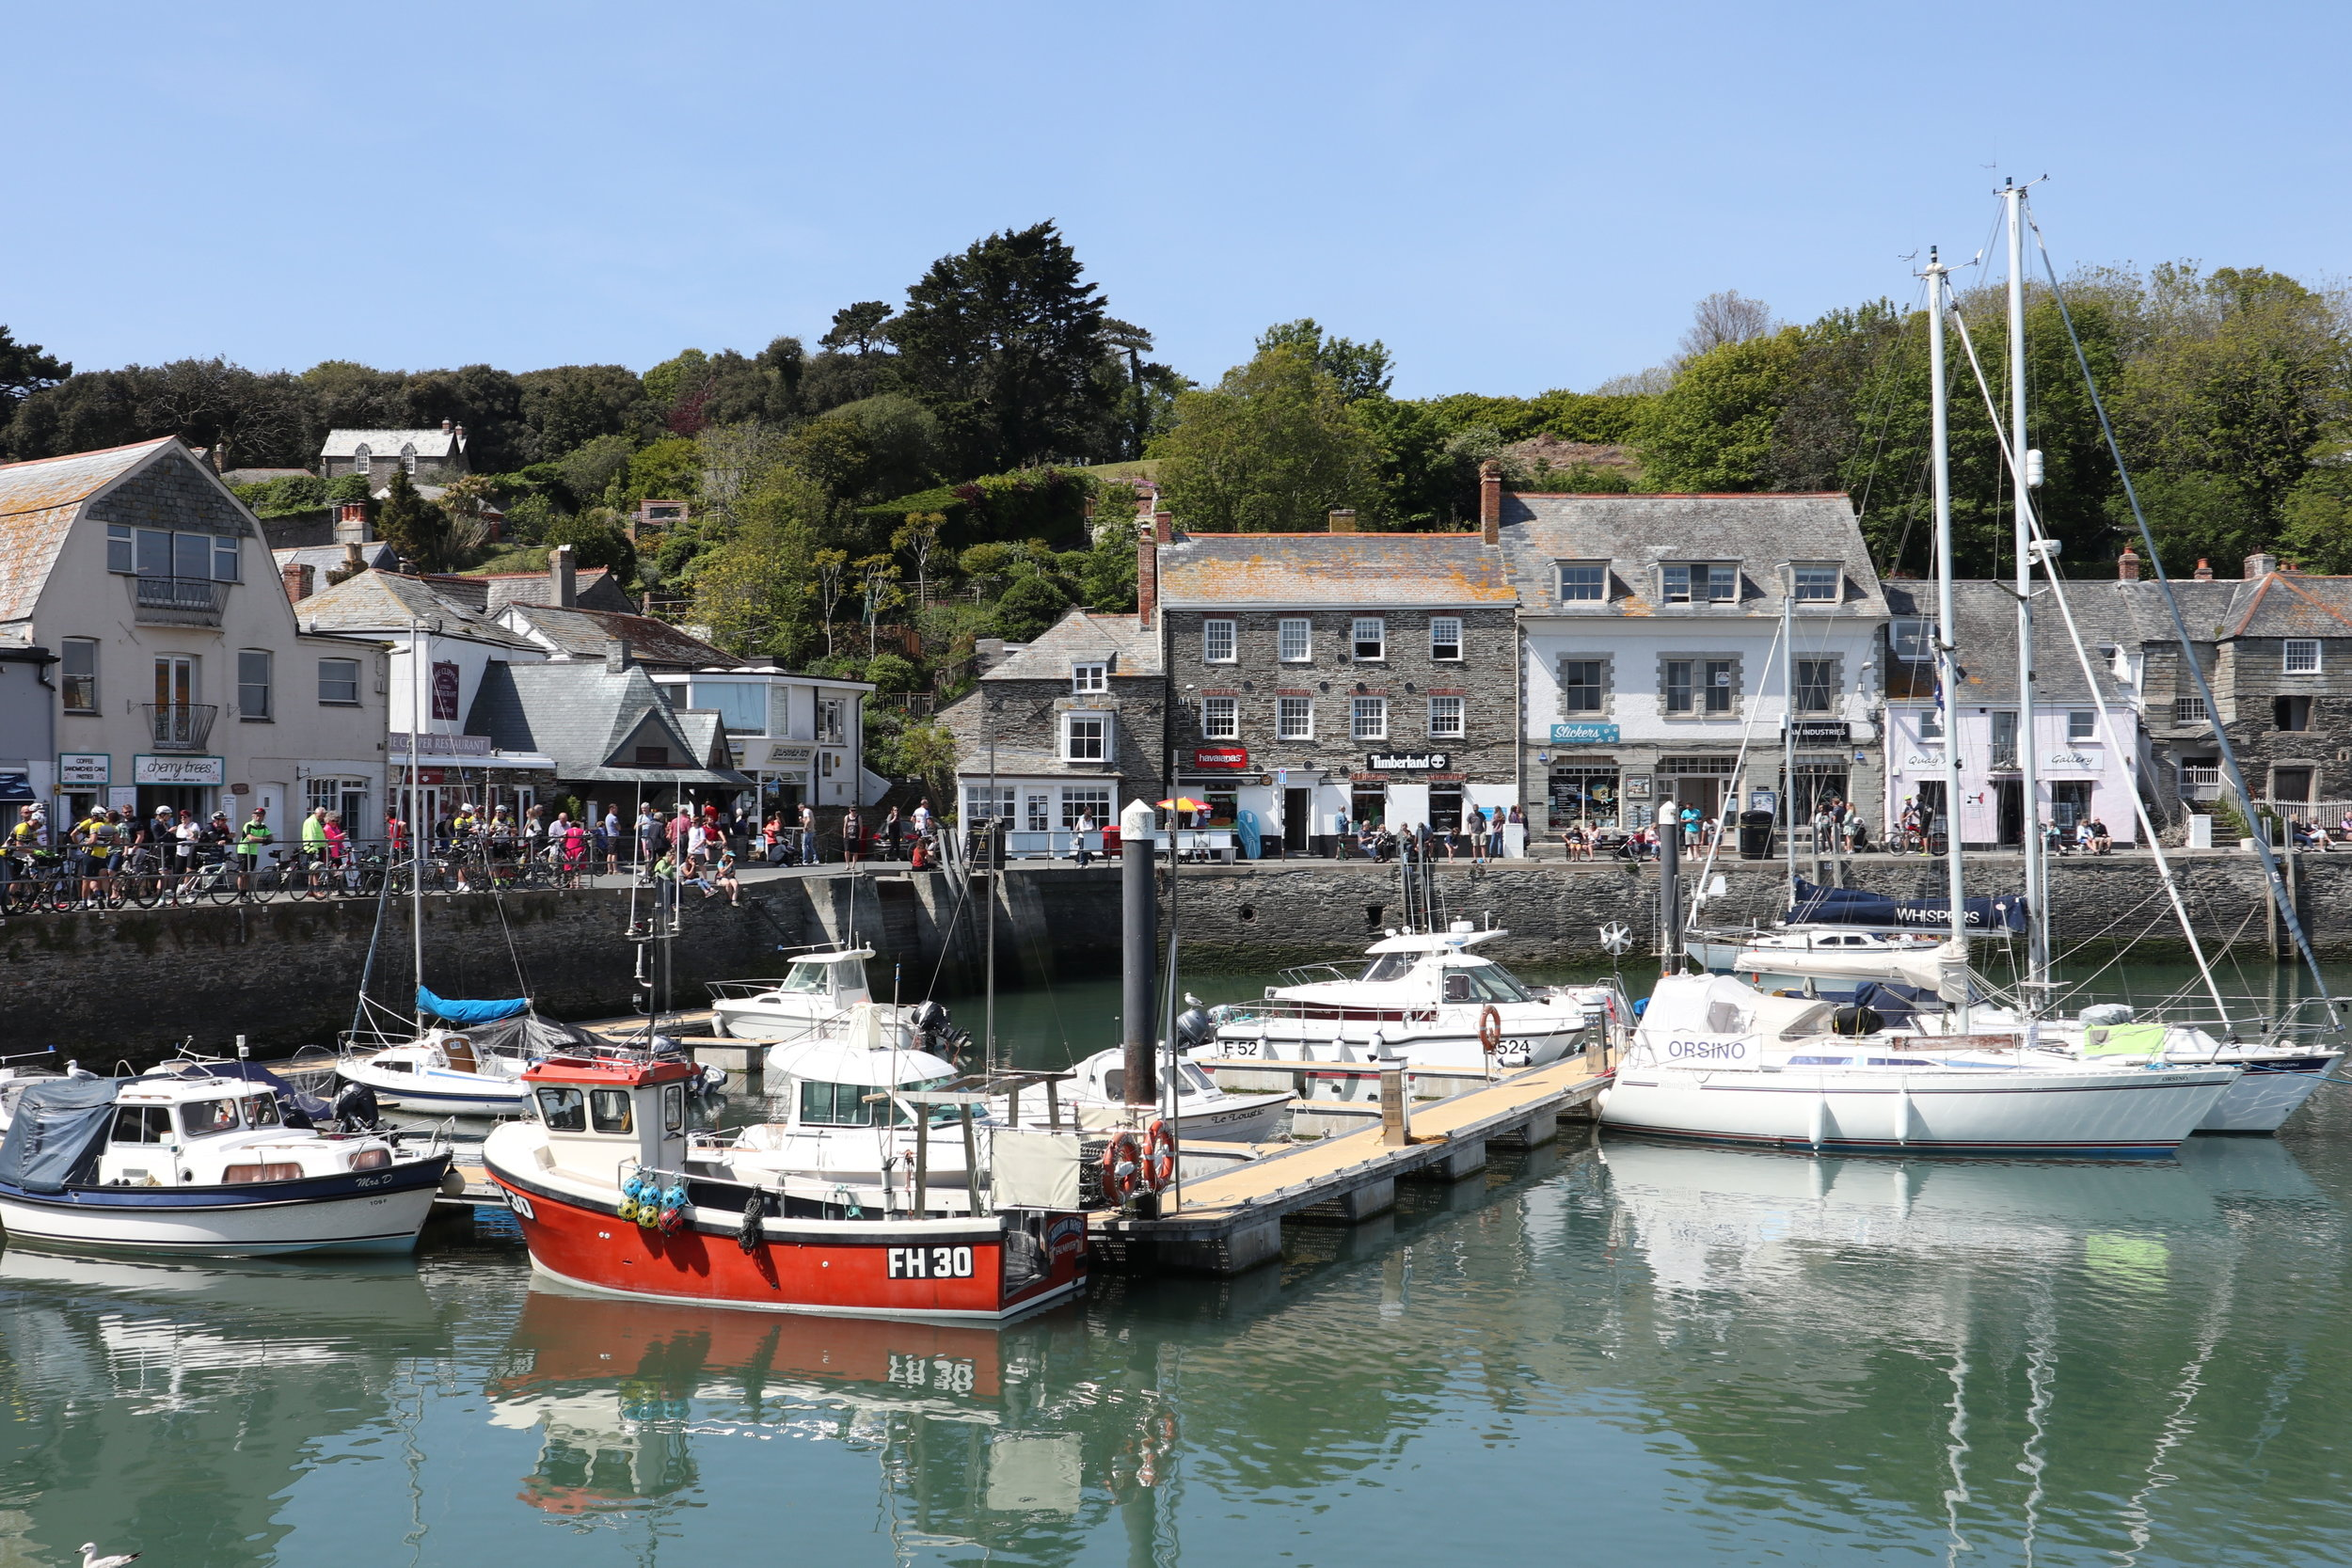 Padstow in Cornwall is a foodie haven with many michelin star restaurants